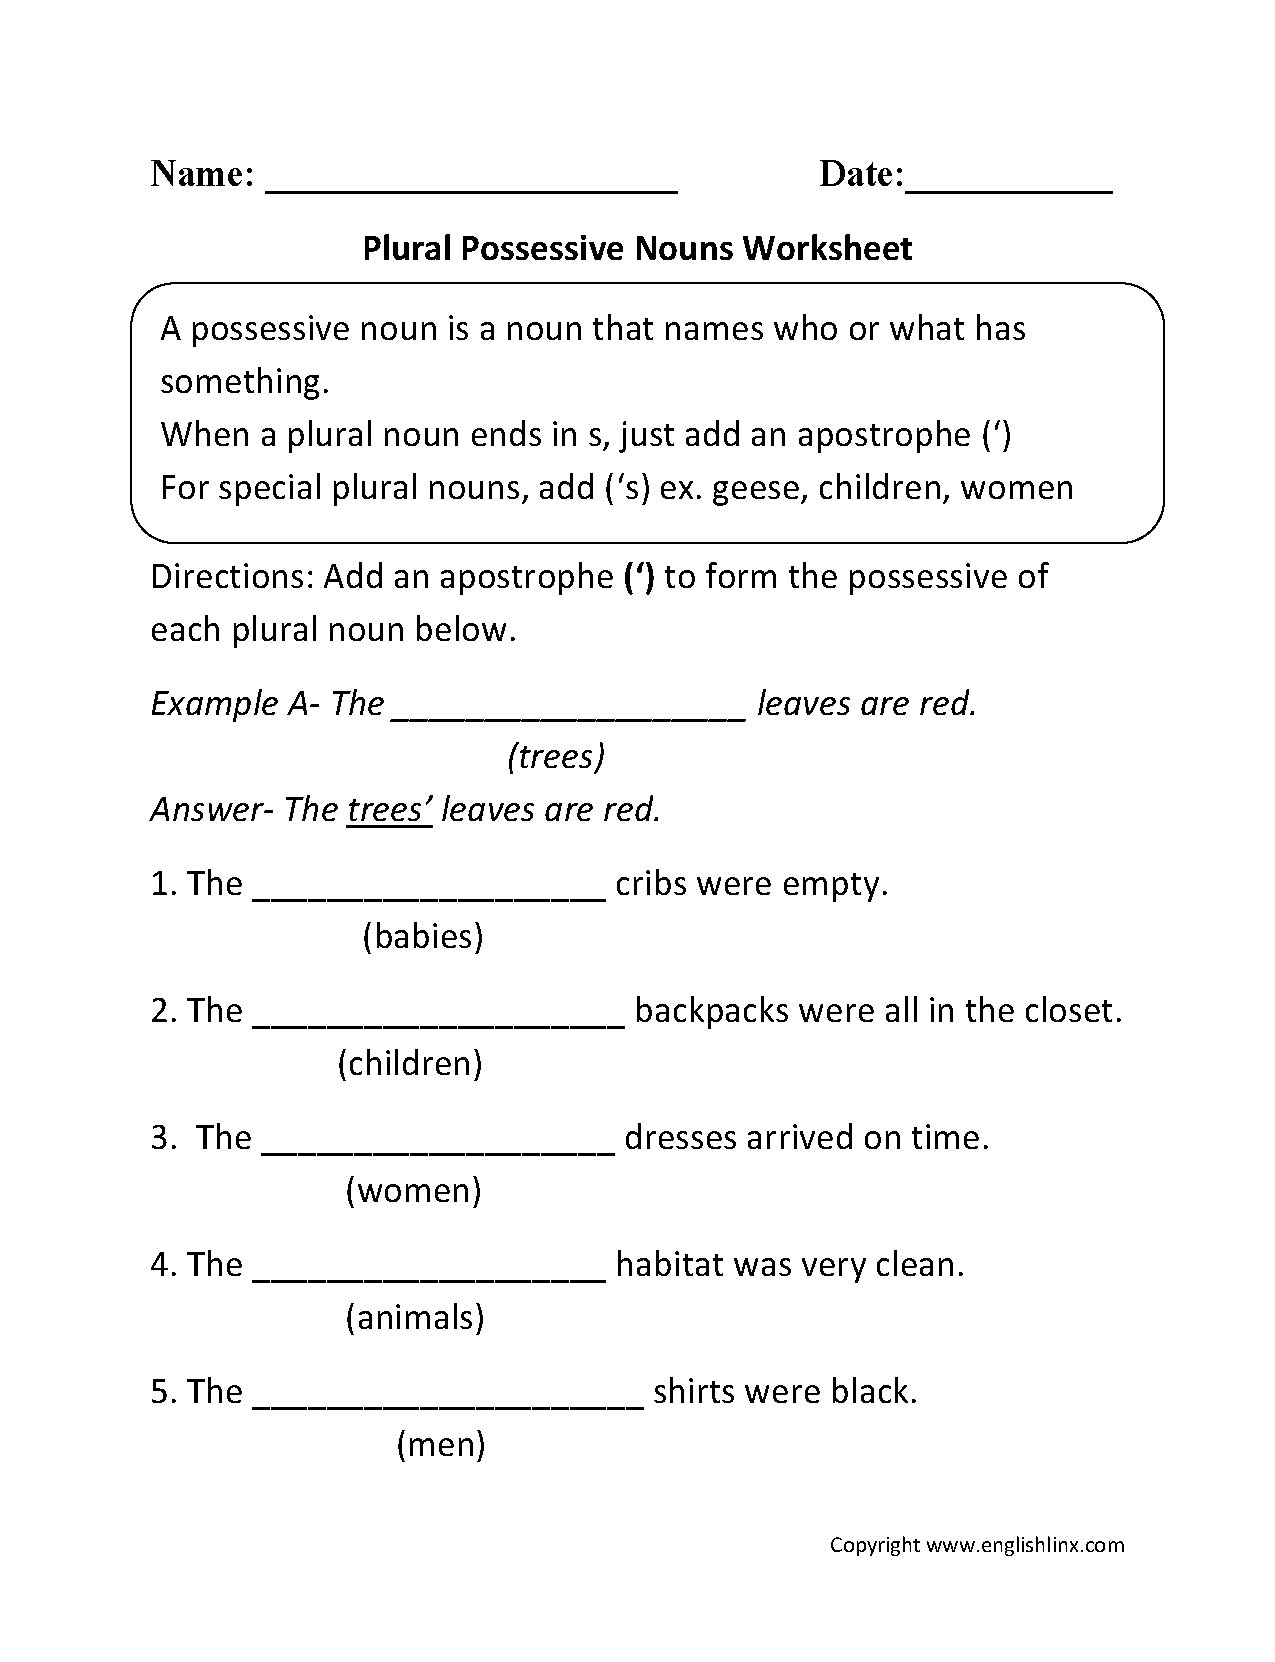 Aldiablosus  Pretty Nouns Worksheets  Possessive Nouns Worksheets With Hot Possessive Nouns Worksheets With Amazing Key Stage One Worksheets Also Irs Publication  Worksheet  In Addition Drawing Angles Worksheets And Multiple Intelligence Worksheet As Well As Pdf English Worksheets Additionally Calculating Speed Worksheets From Englishlinxcom With Aldiablosus  Hot Nouns Worksheets  Possessive Nouns Worksheets With Amazing Possessive Nouns Worksheets And Pretty Key Stage One Worksheets Also Irs Publication  Worksheet  In Addition Drawing Angles Worksheets From Englishlinxcom